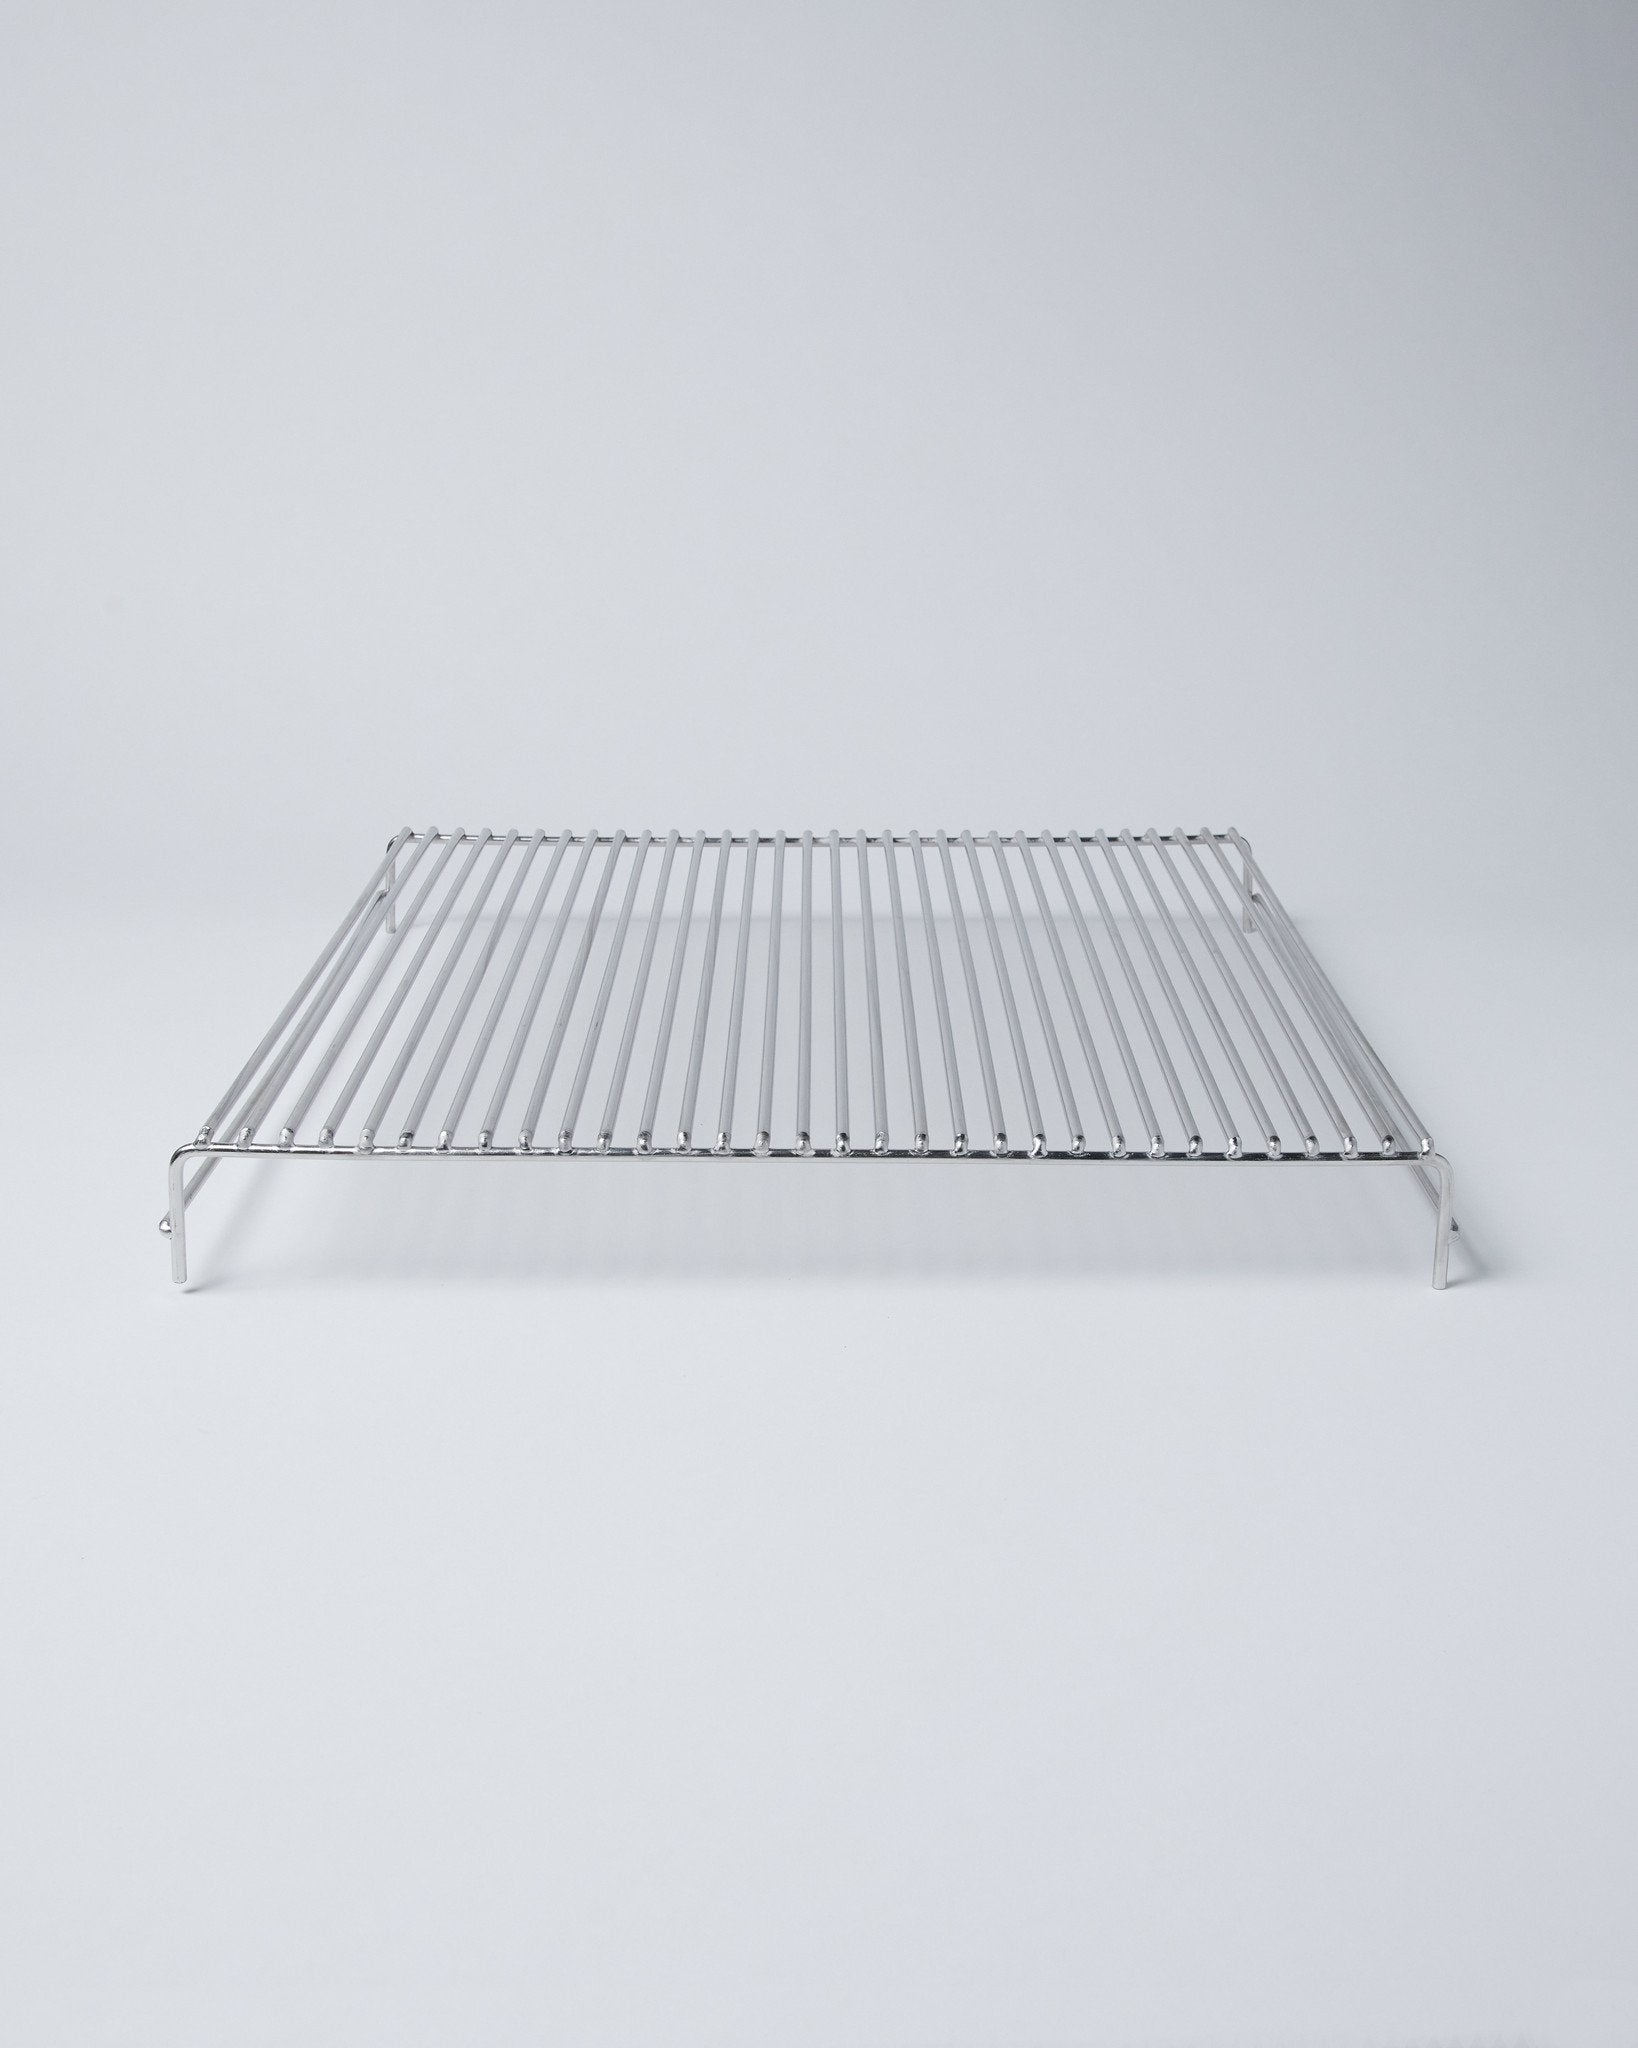 GRILL MESH Stove OUTDOOR GUILD MURACO